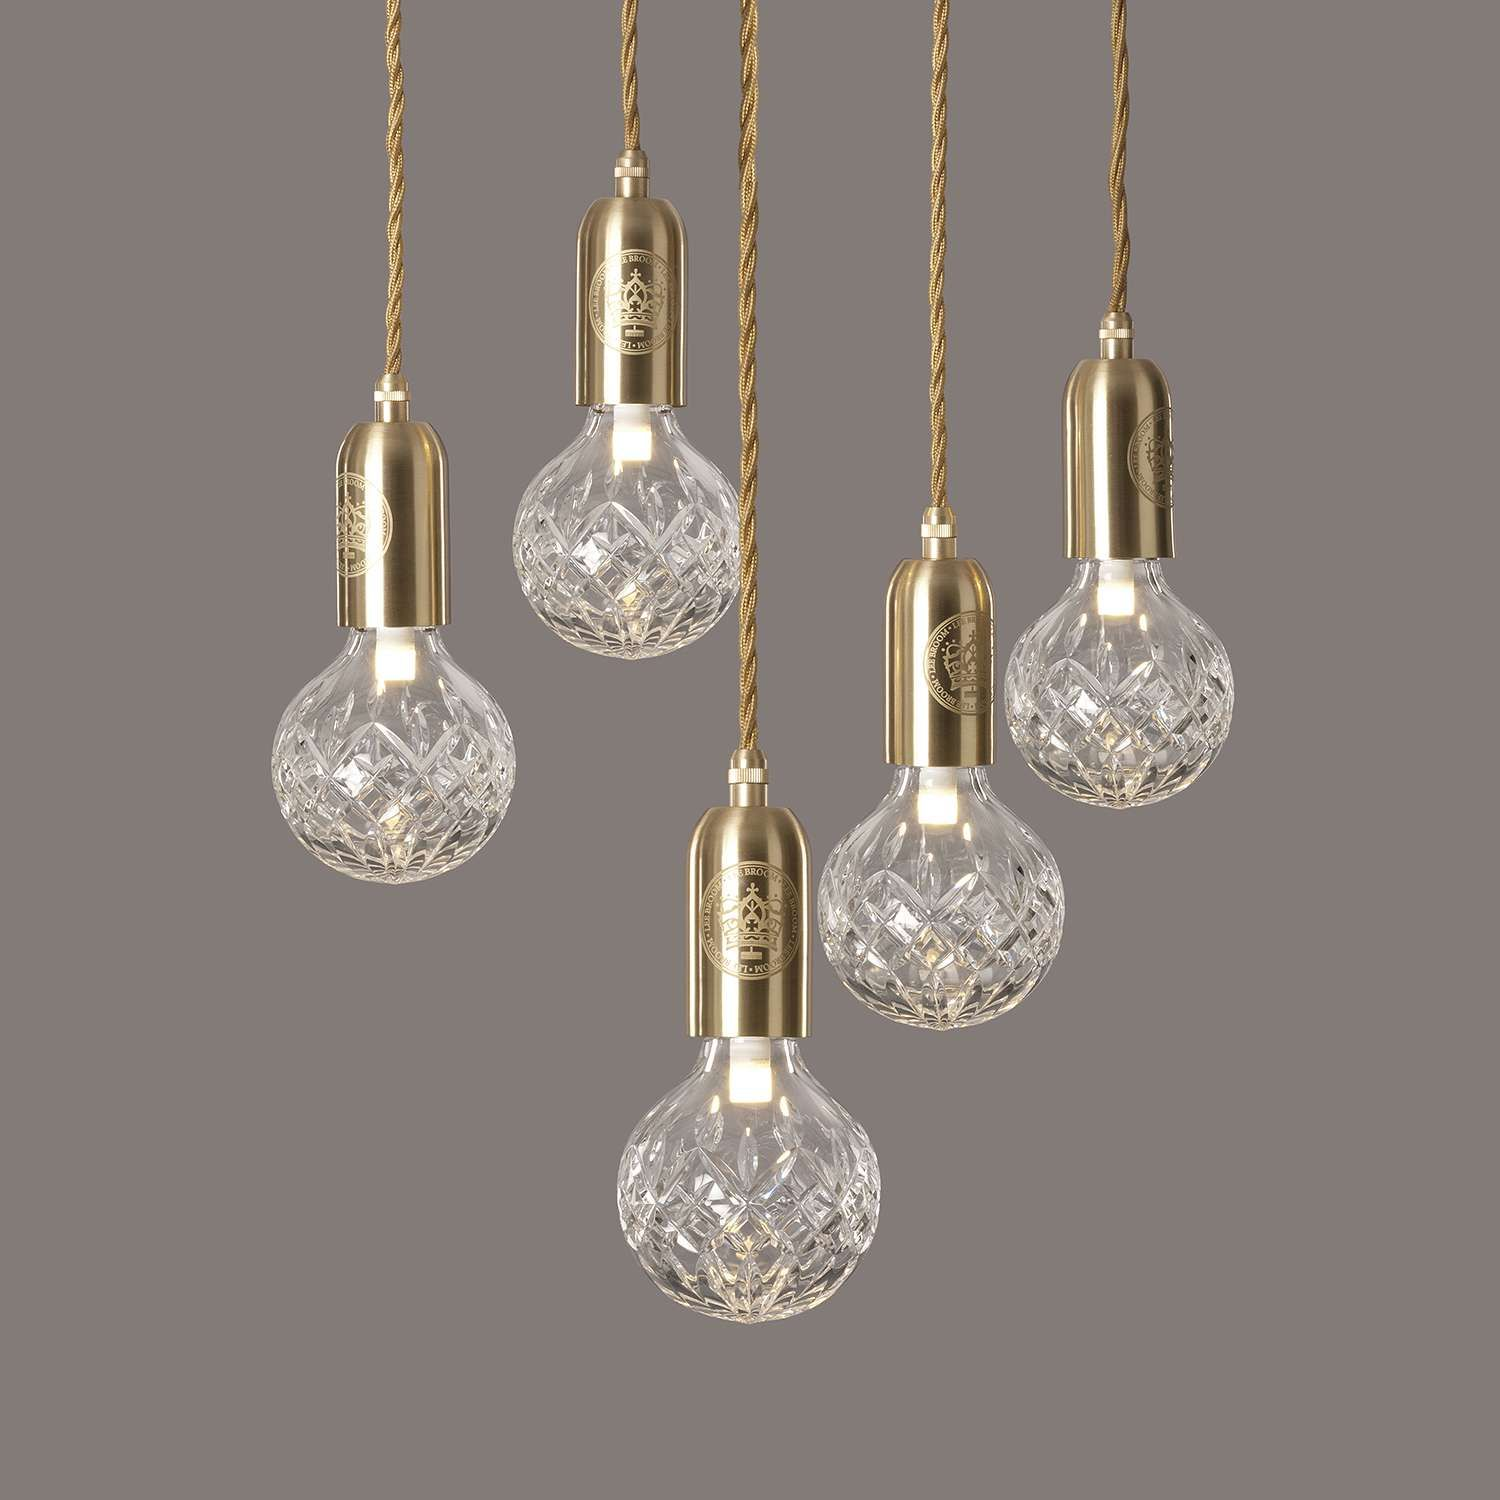 Clear Crystal Crystal Pendant Lighting Pendant Chandelier Ceiling Lights